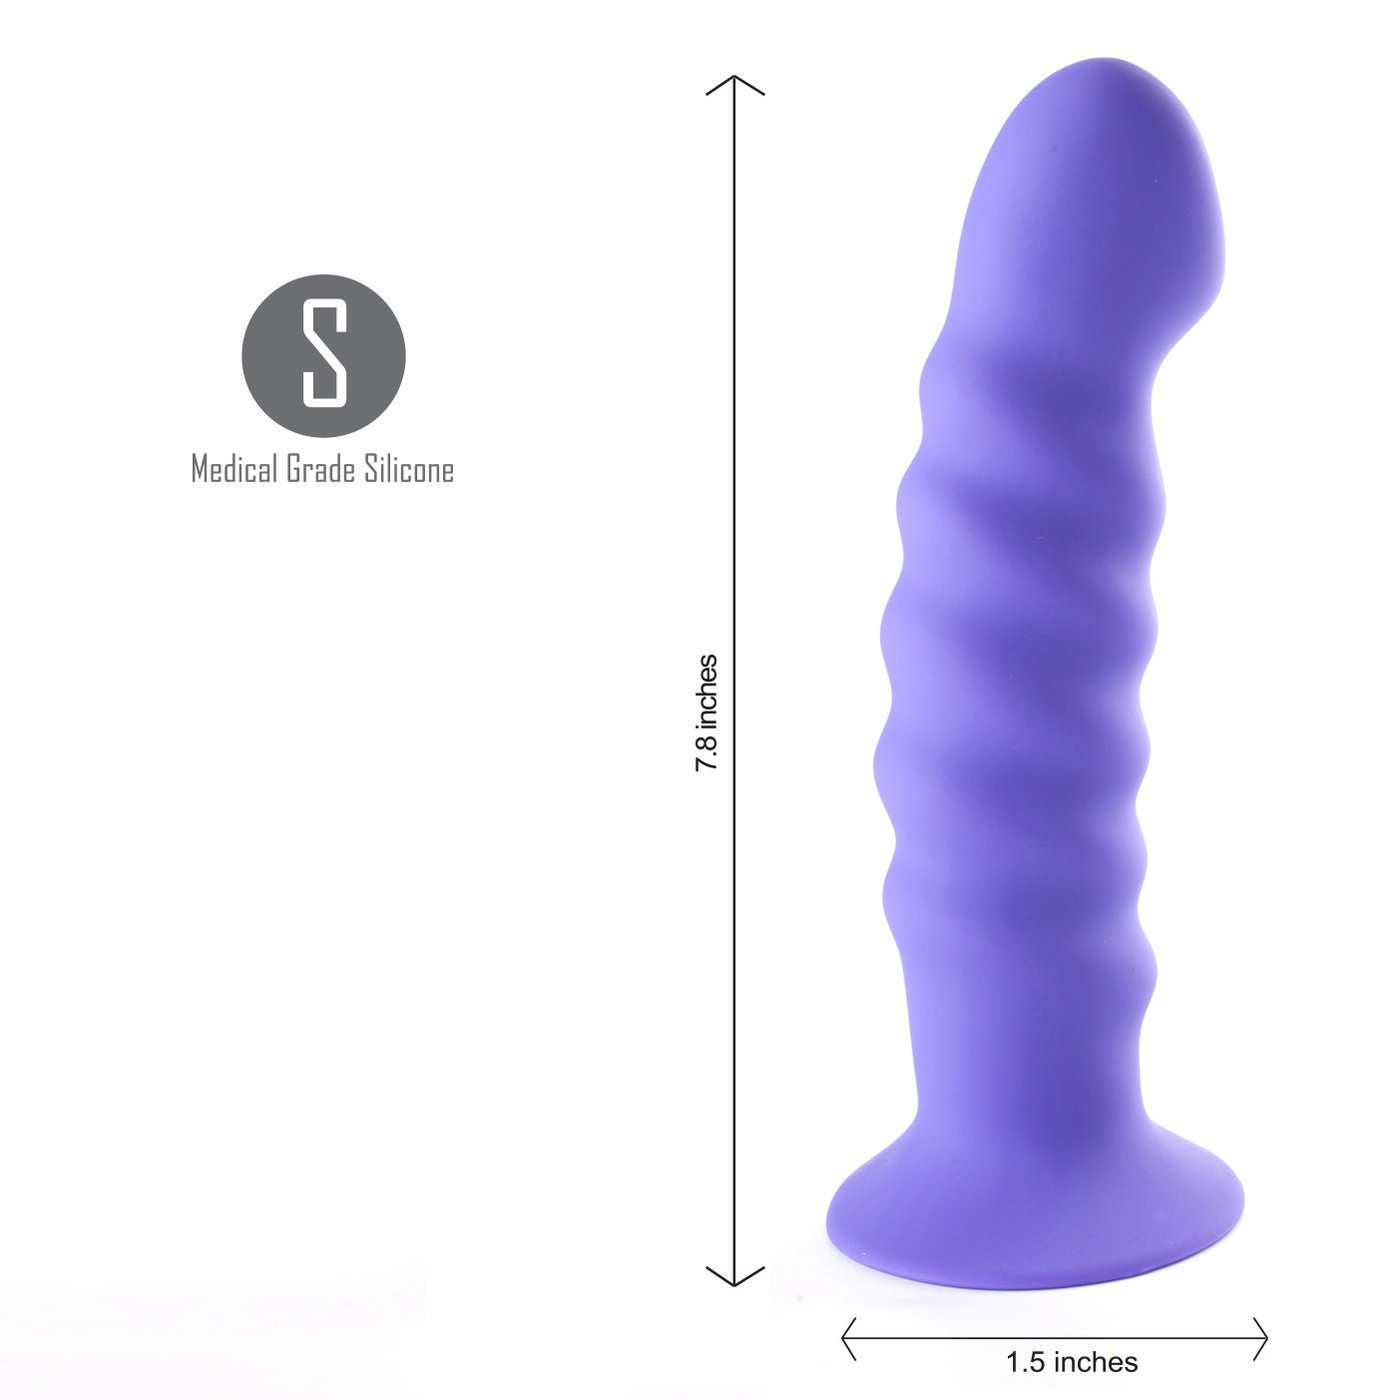 Maia Kendall Silicone 8 Inch Ribbed Dildo - Purple side view against a white background with arrows indicating the size of the dildo